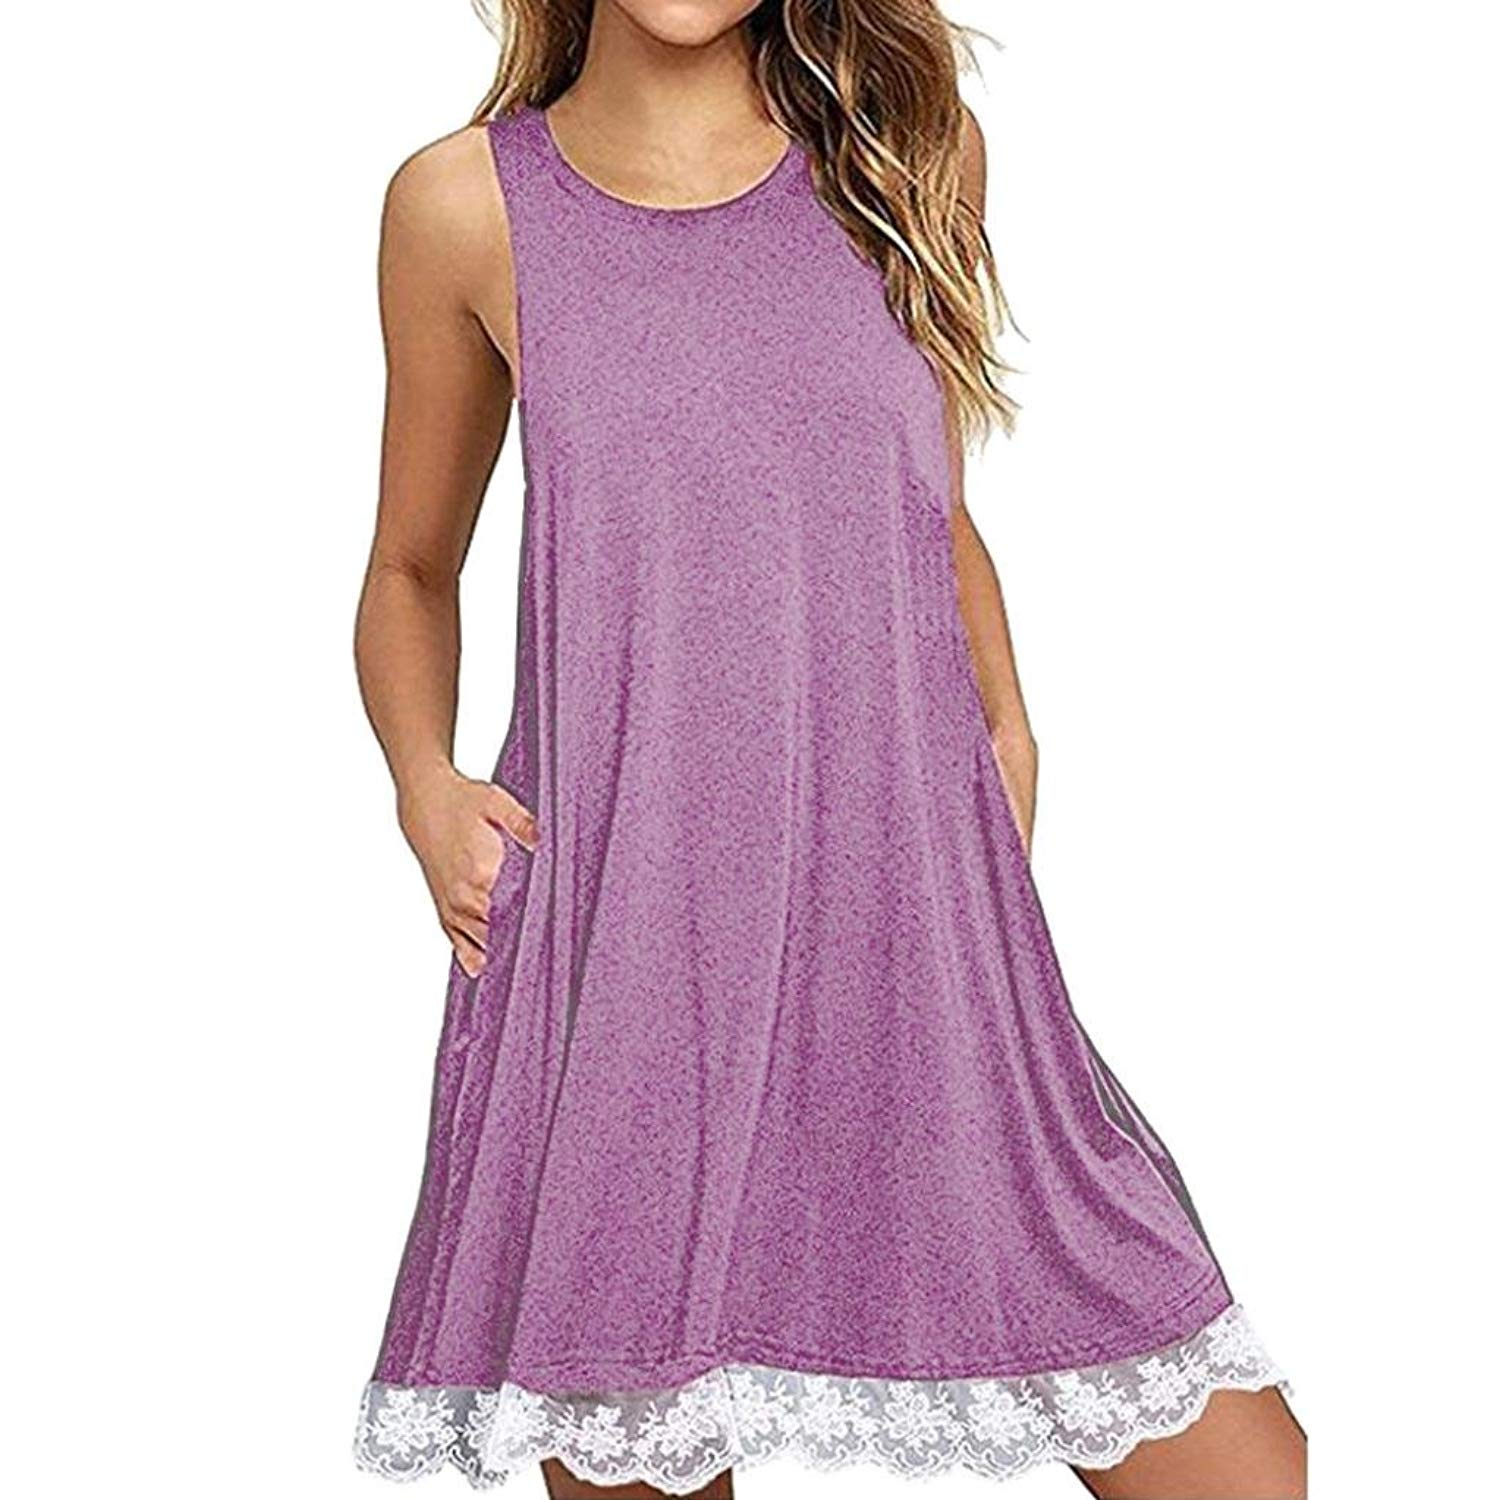 Women Dress,Hot Sale!Leedford Womens Summer Casual O Neck Sleeveless Mini Above Knee Loose Vest Dresses with Hem Lace